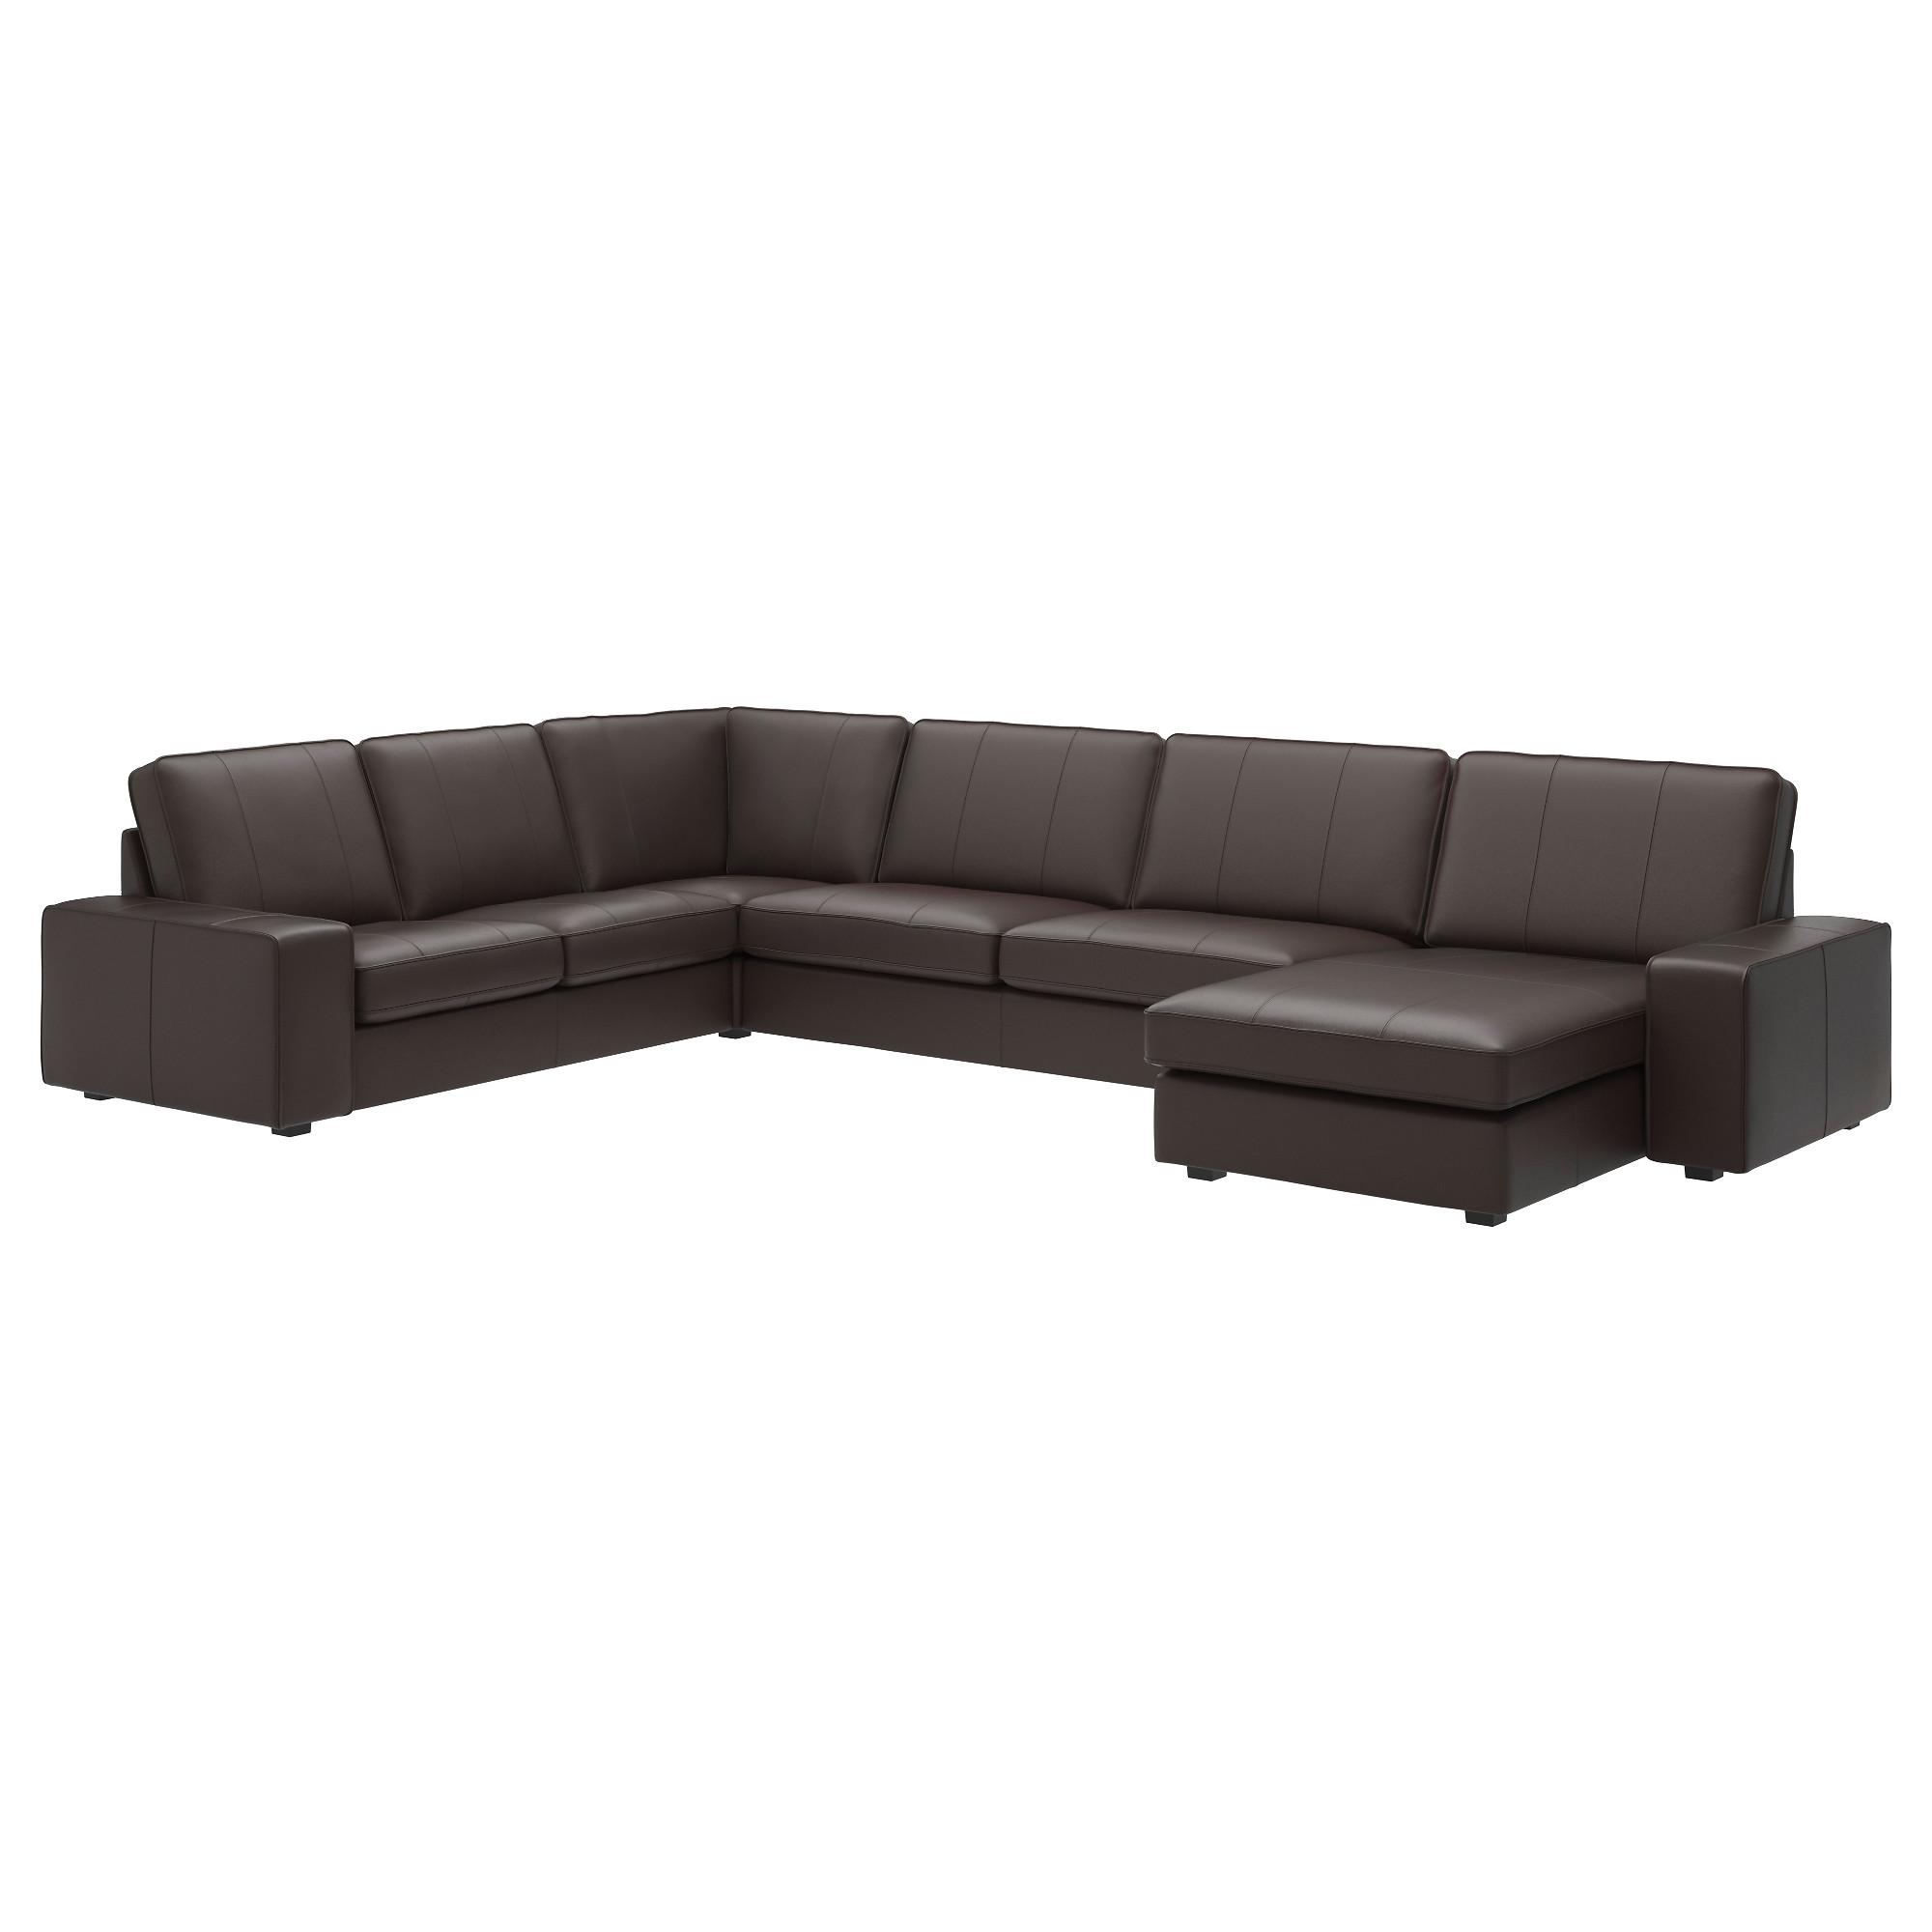 Leather & Faux Leather Couches, Chairs & Ottomans – Ikea Regarding Leather Lounge Sofas (View 6 of 20)